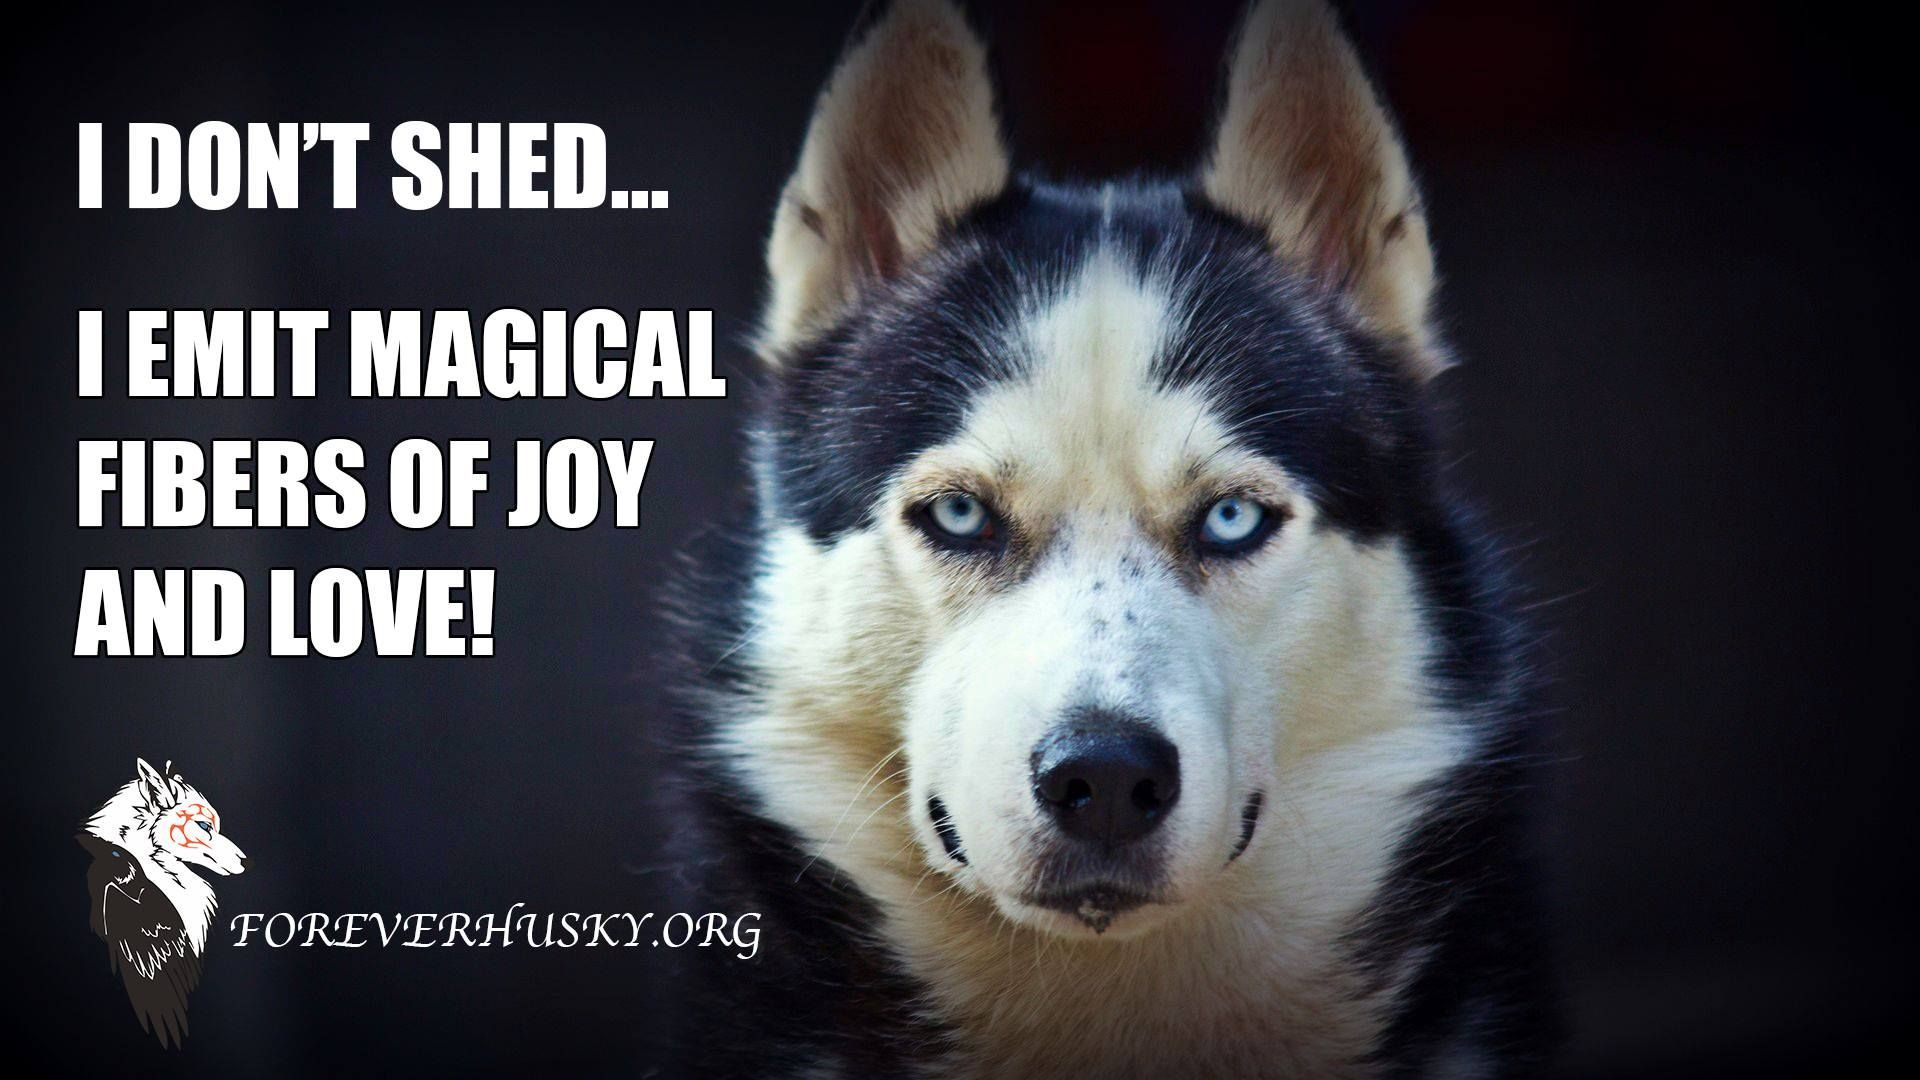 Staggering Types Summer Huskies Huskies Are Dogs Ever Siberian Husky Do Huskies Shed Daily Do Huskies Shed A Lot Huskies Huskies Are Dogs Ever Types bark post Do Huskies Shed